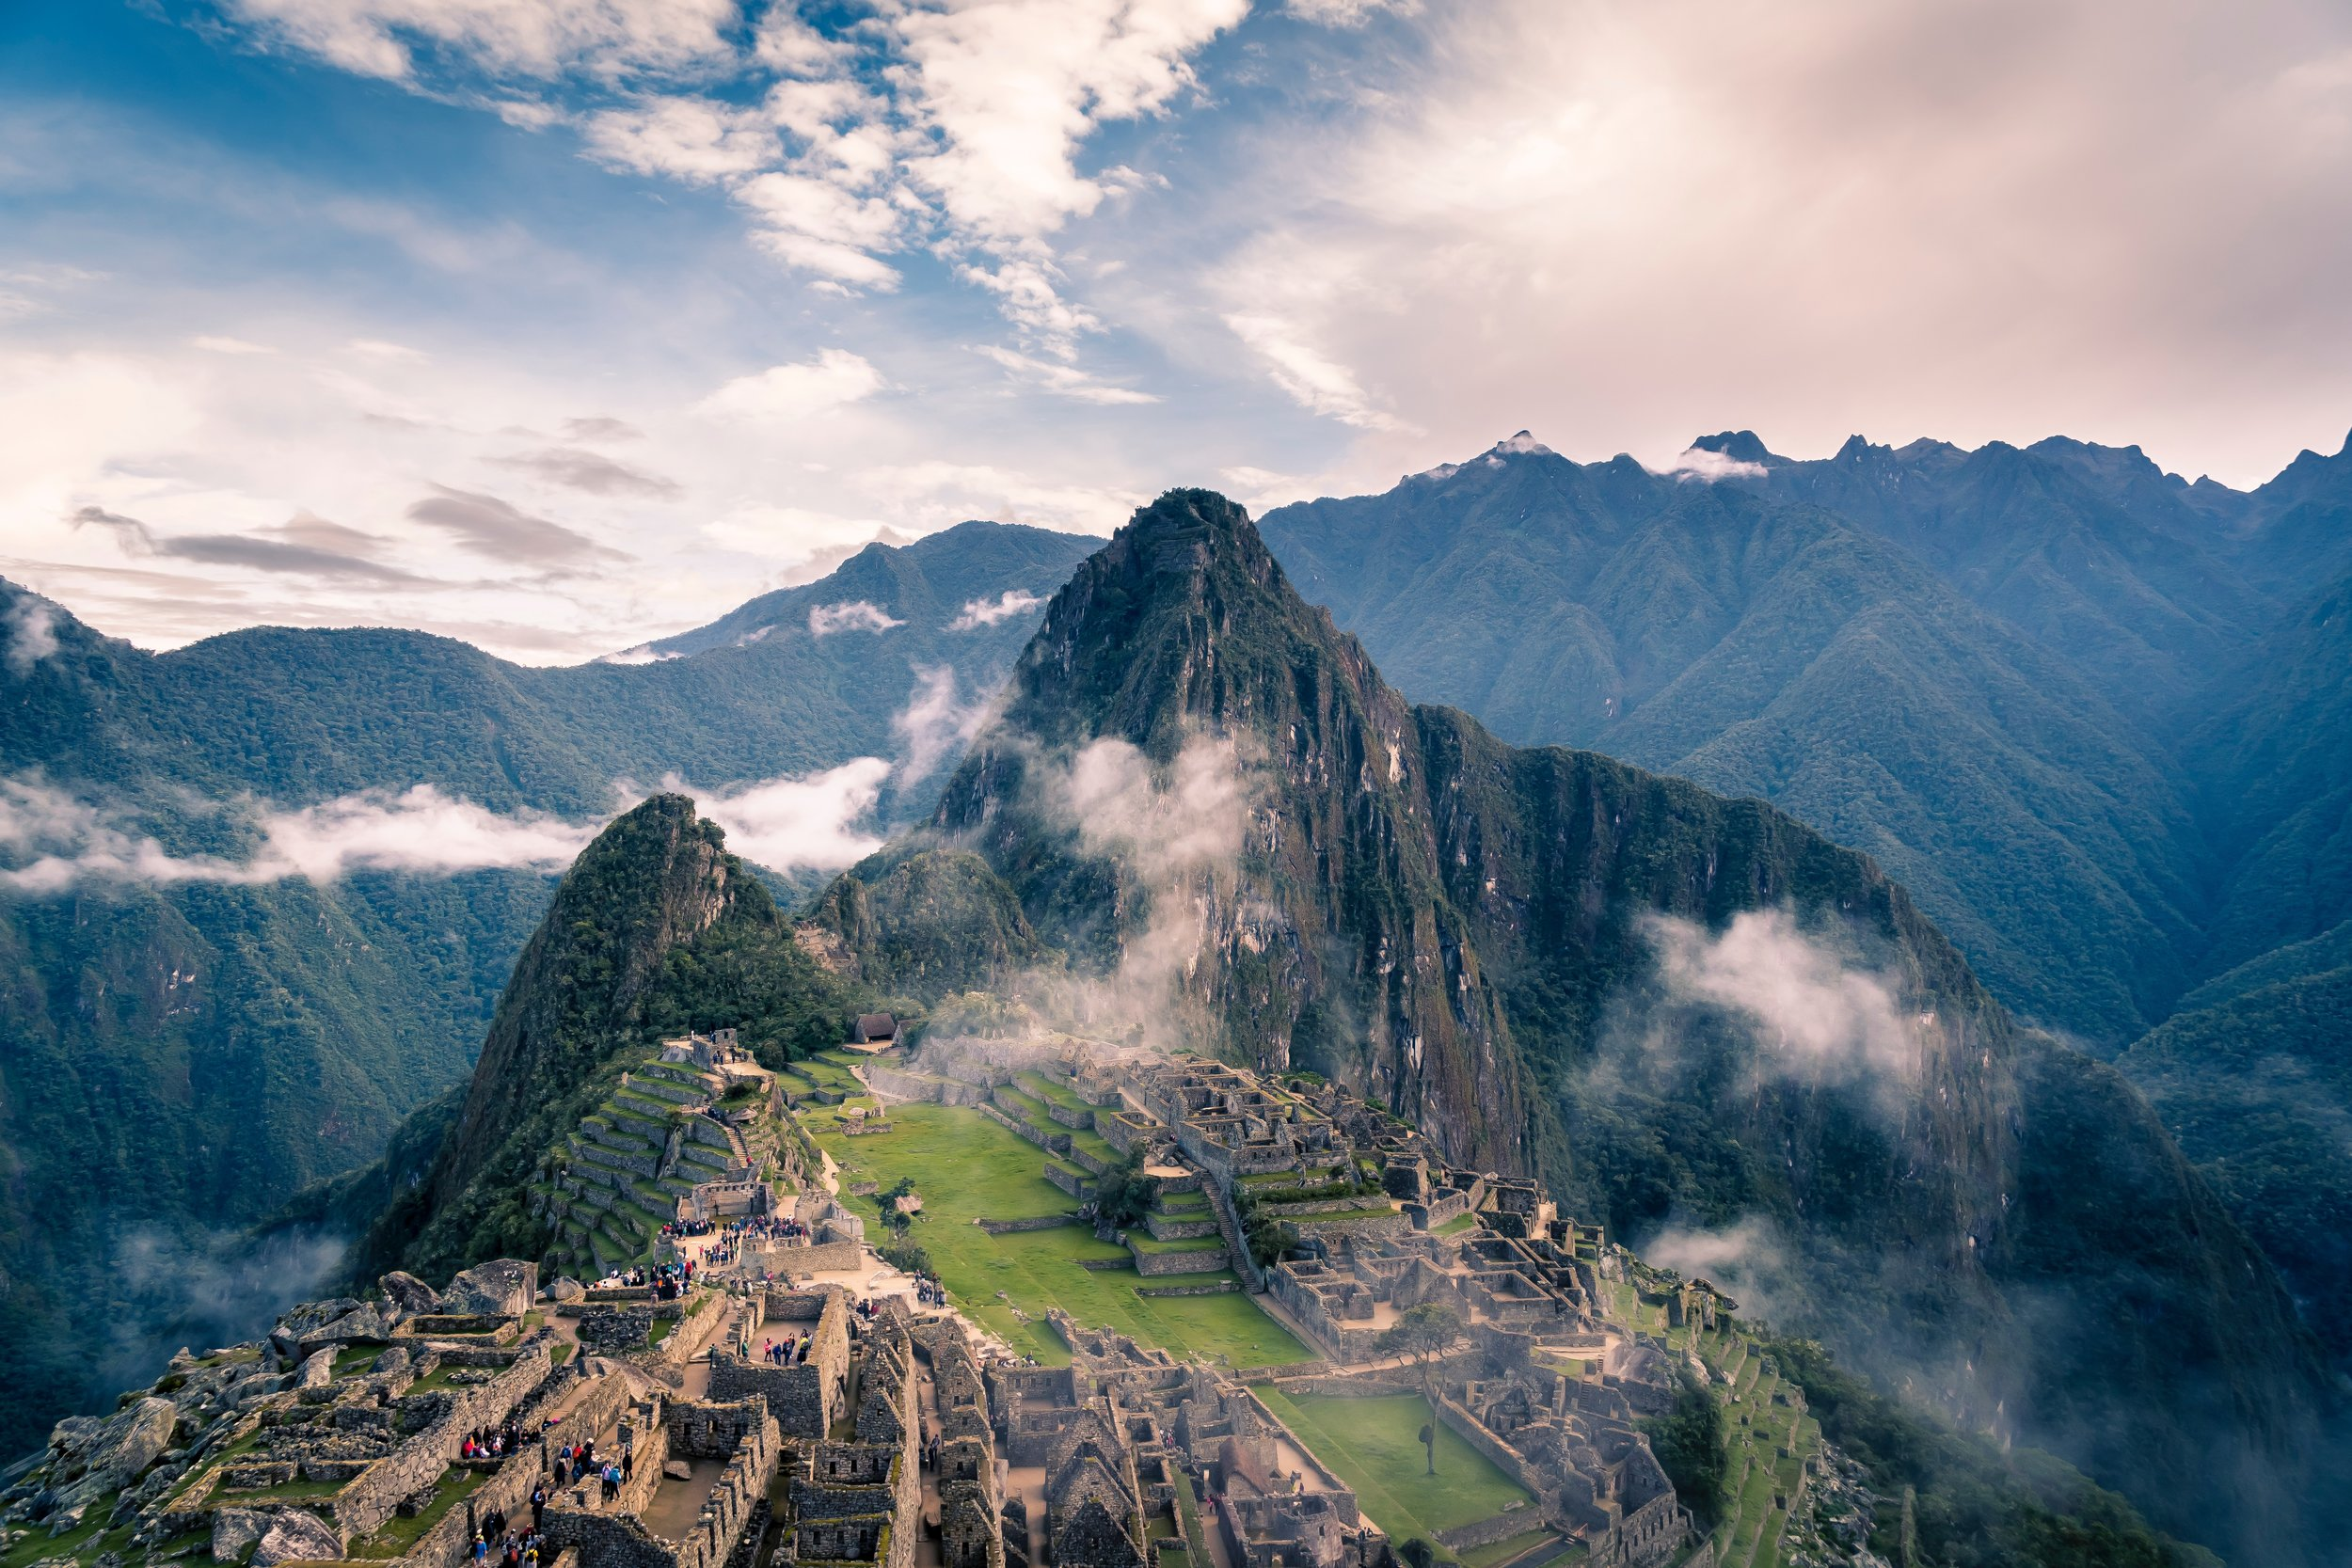 The Amazon rainforest, ancient ruins, Machu Picchu and more.